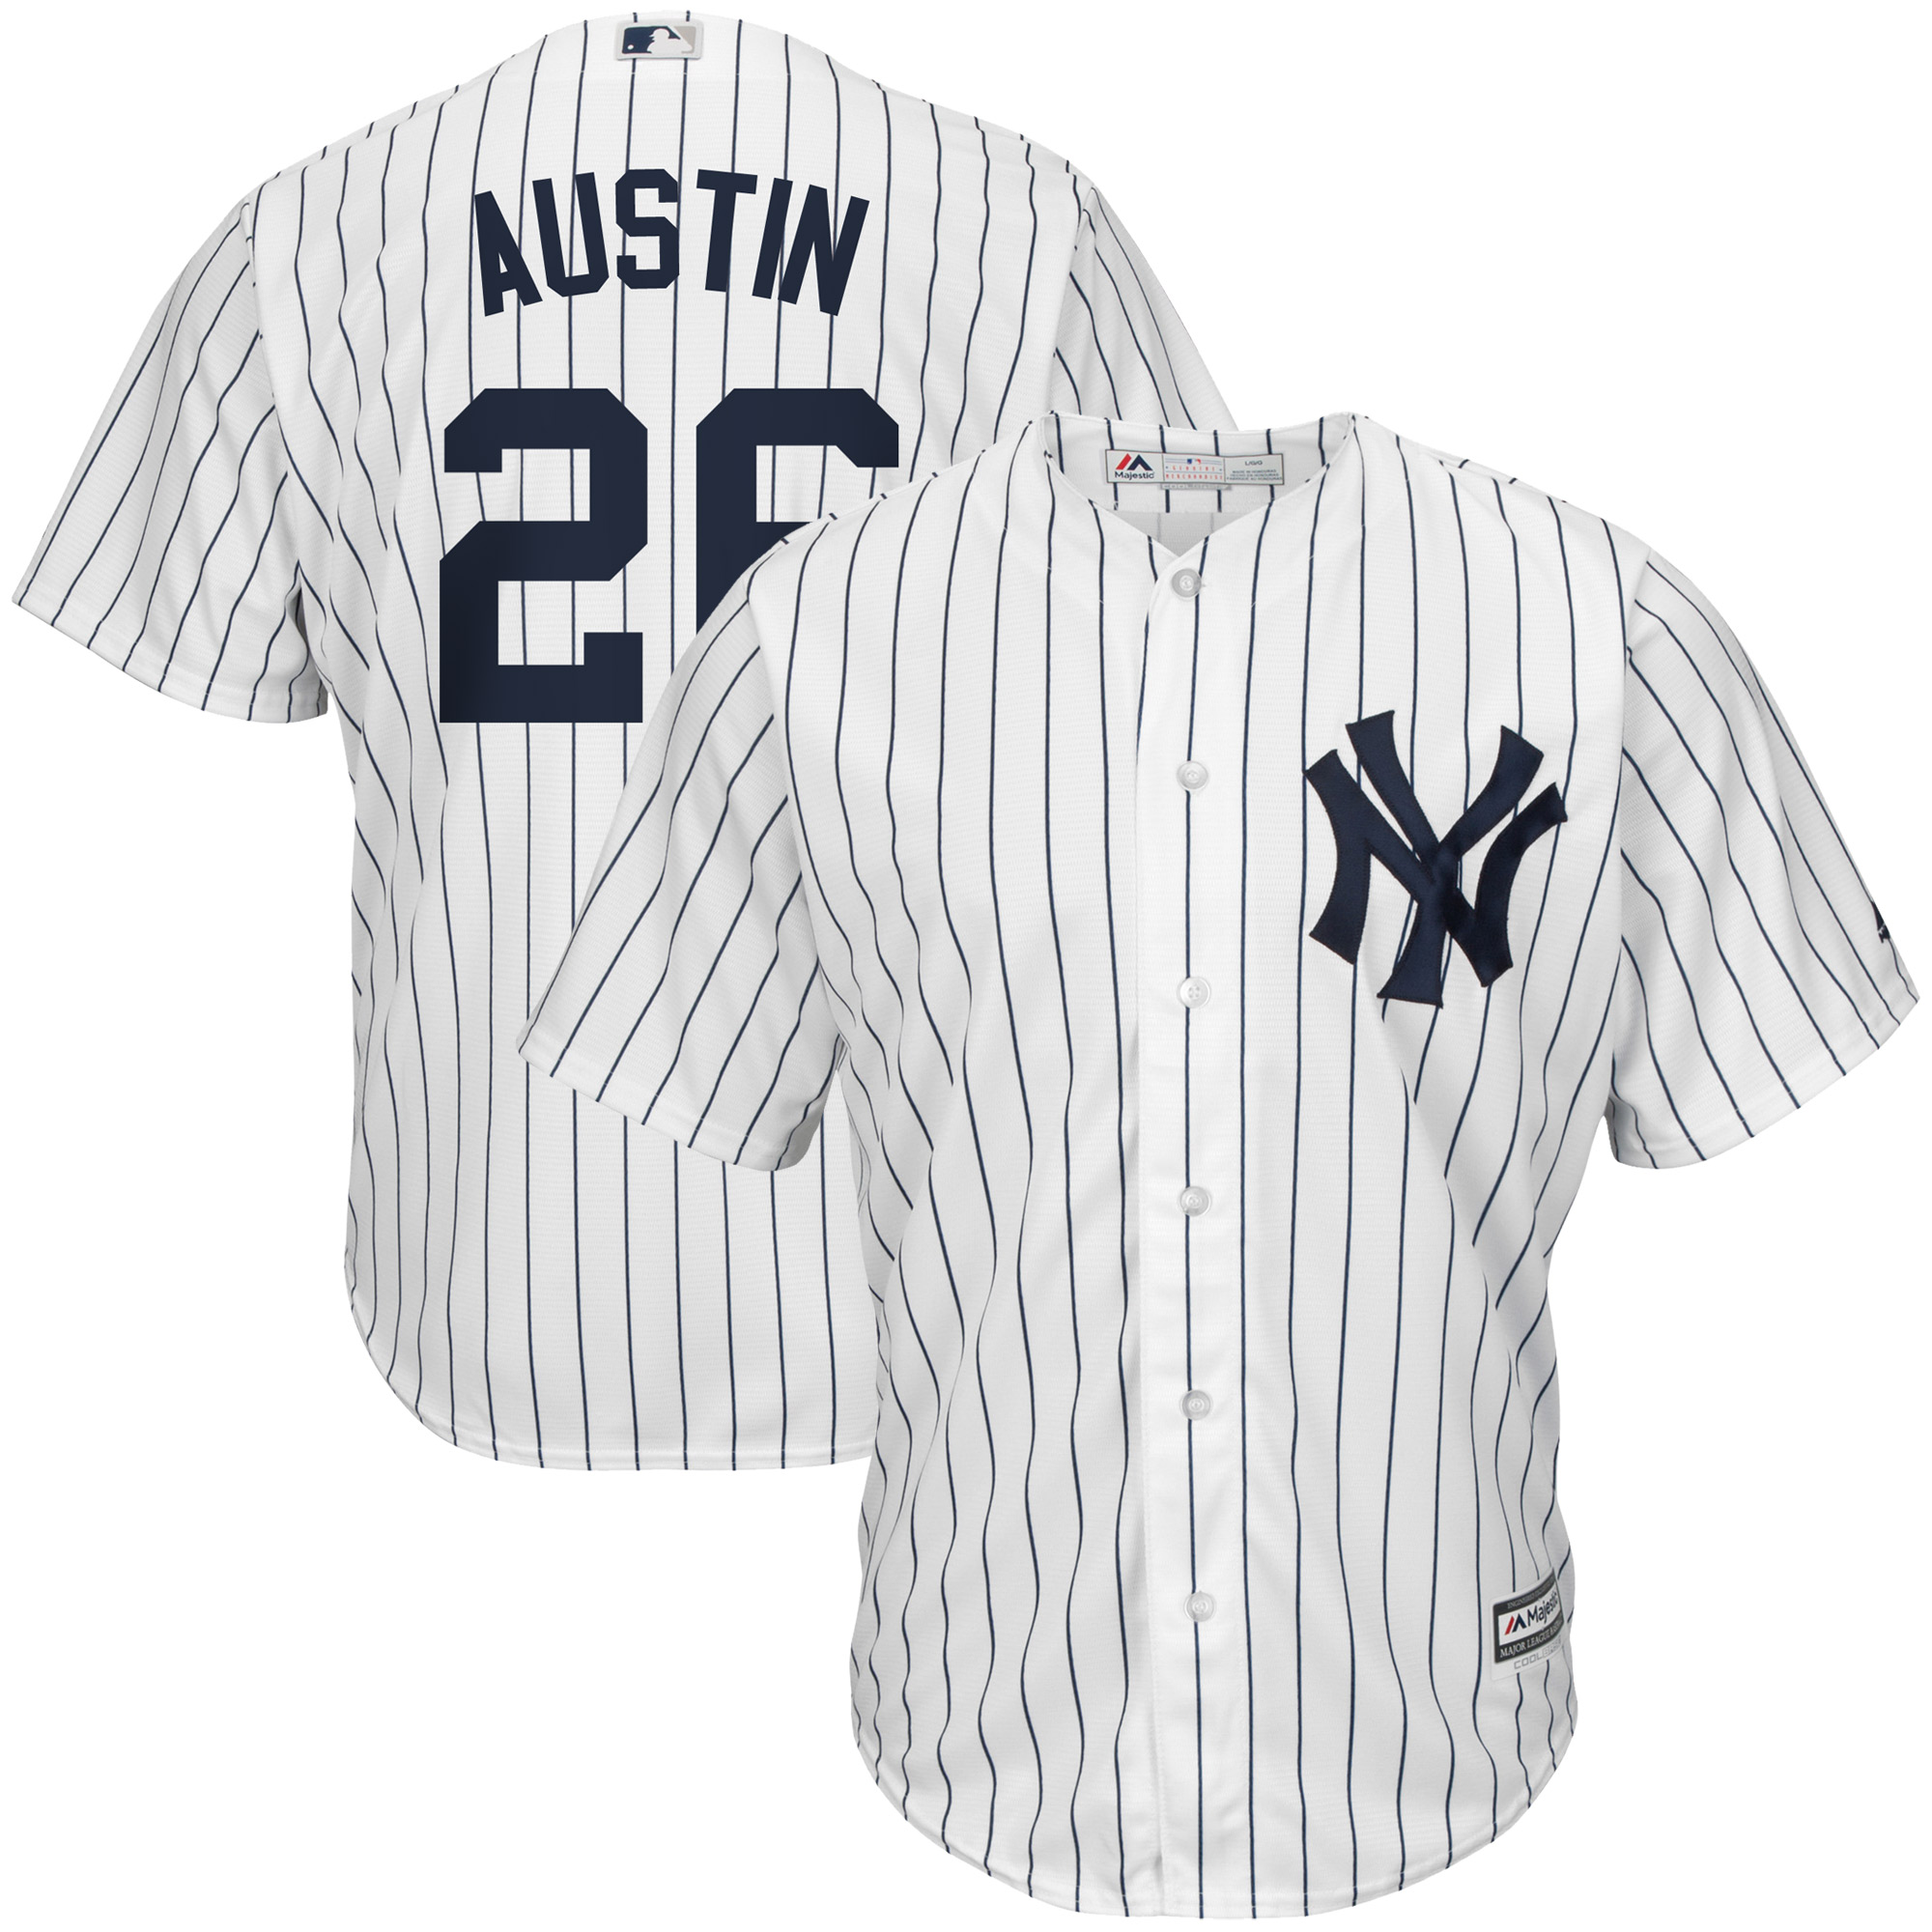 Tyler Austin New York Yankees Majestic Home Official Cool Base Player Jersey - White/Navy